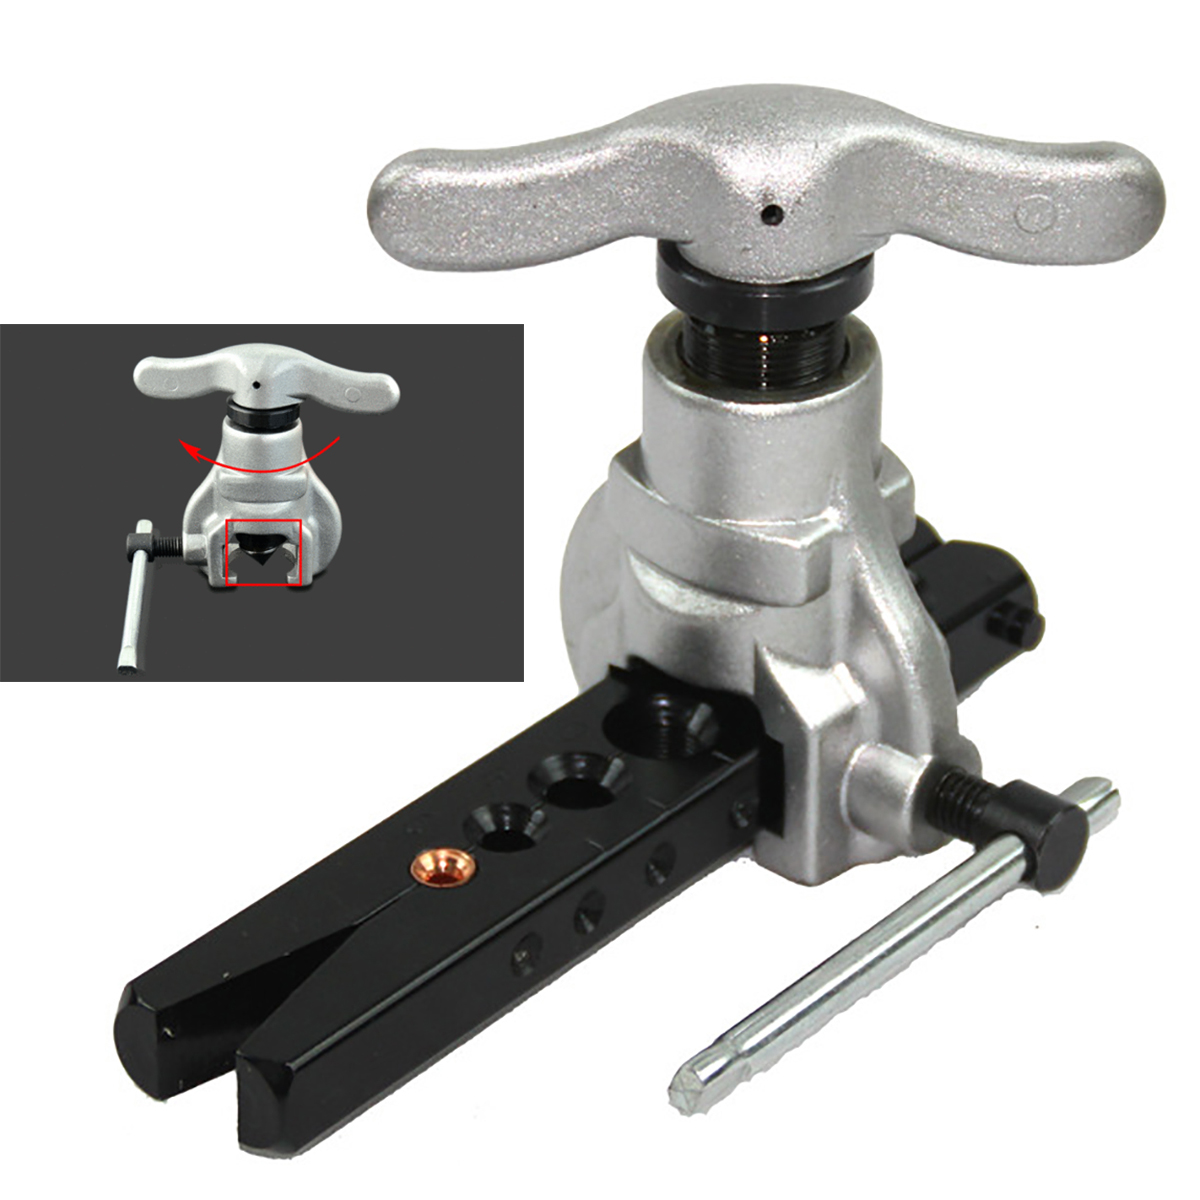 """2pcs x Eccentric Cone Flaring Tool Refrigeration 1/4"""" To 3/4"""" Copper Tube Capacity Hand tools"""